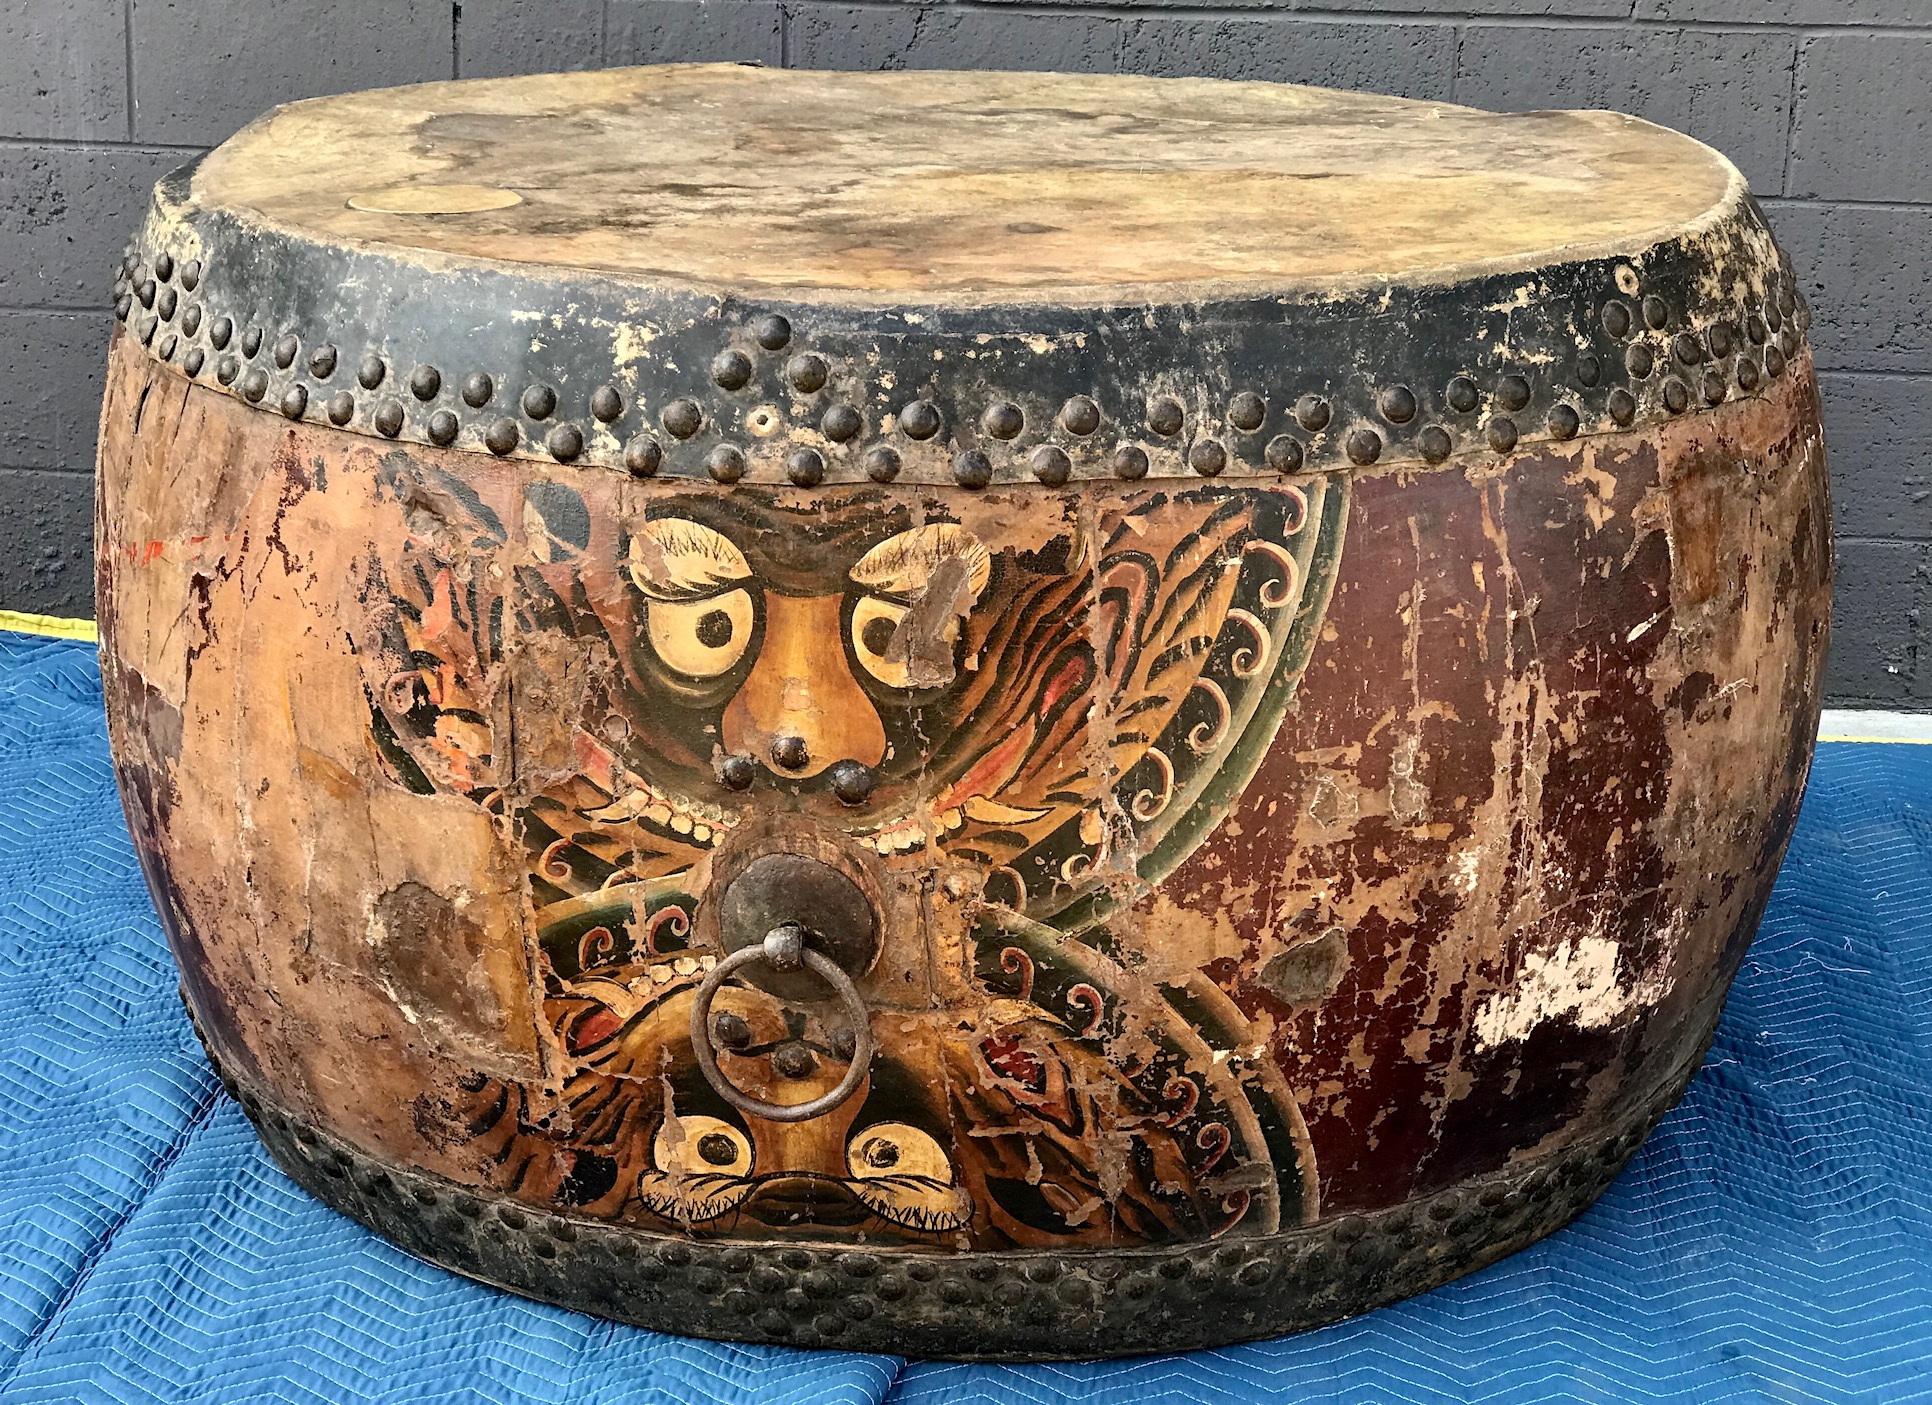 "Musical Instrument, Large Drum, Byo-Uchi-Daiko (drum with tacks), China, vintage, Wood, metal, hide, paint, 60"" x 35"", $, thedavidalancollection.com , solana beach, Ca"